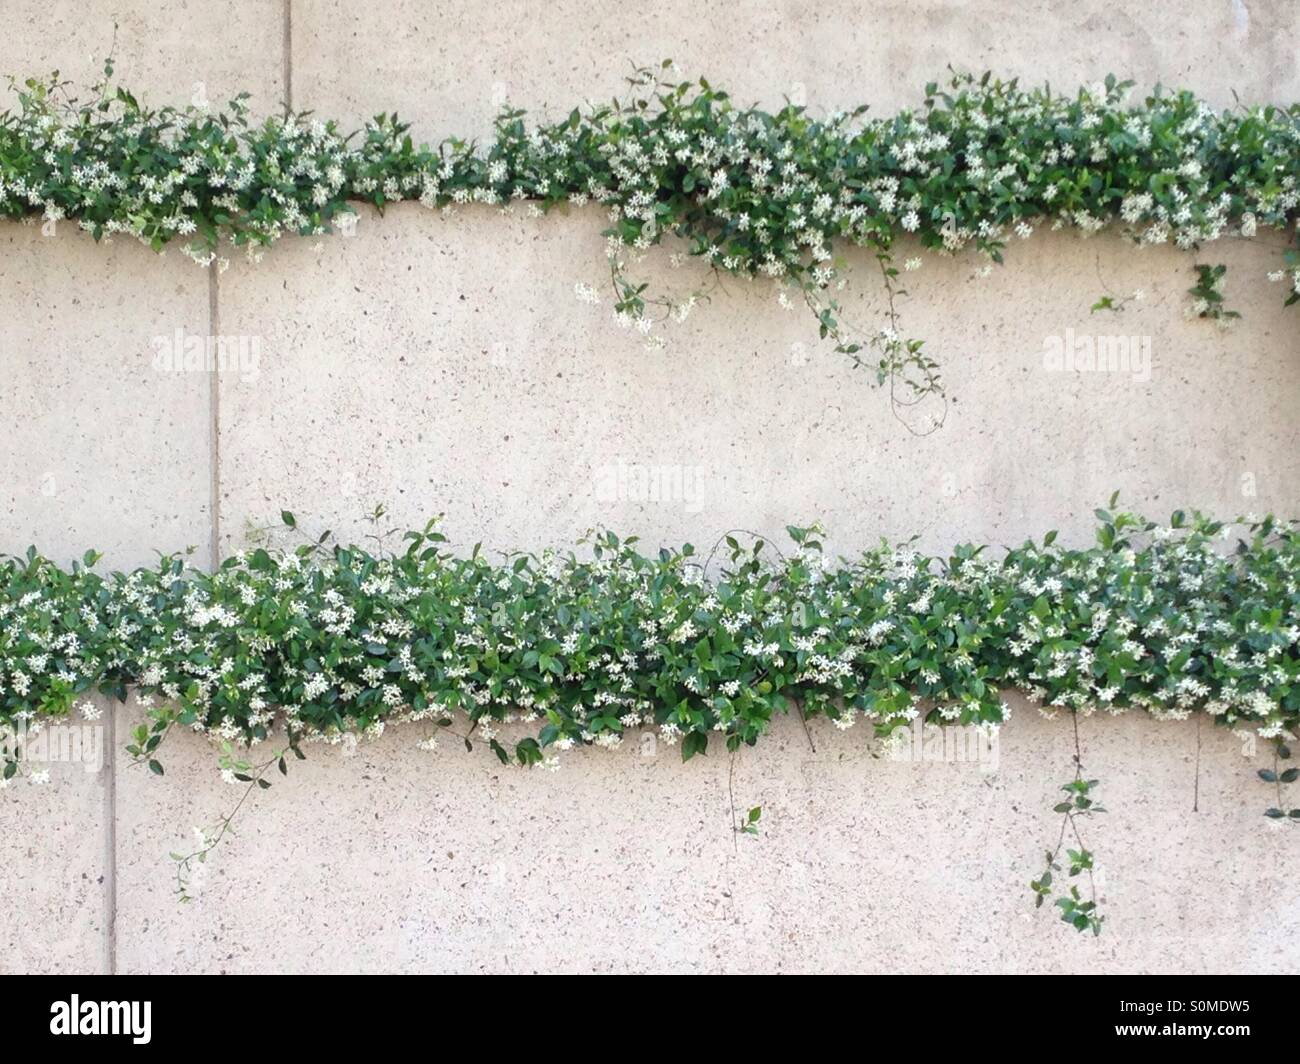 Star Jasmine planted on vertical wall Stock Photo